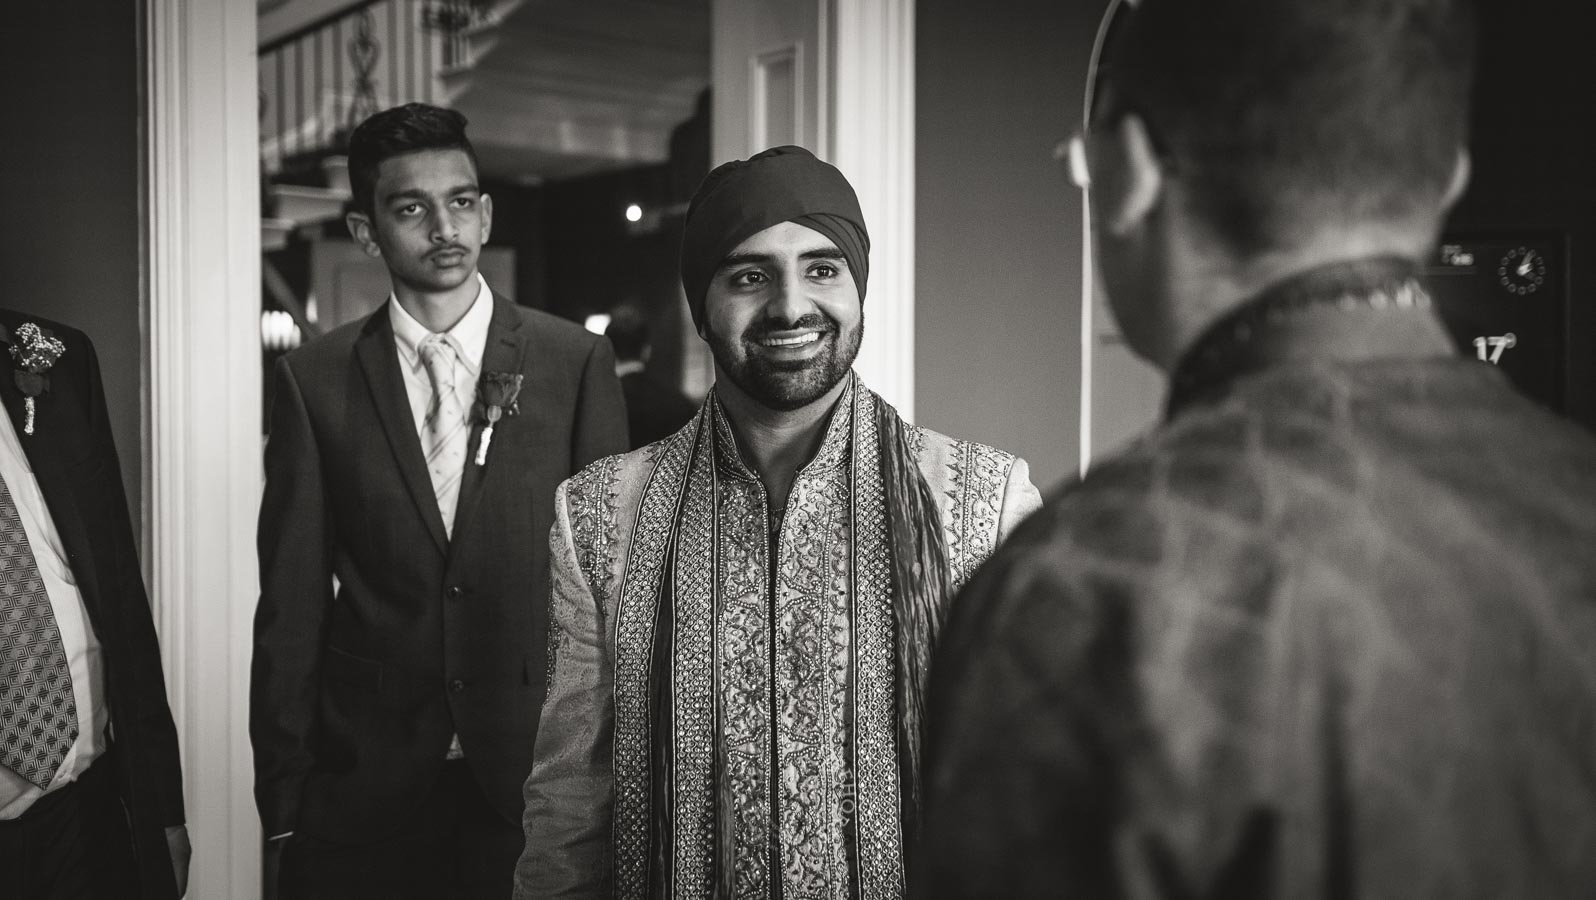 sikh-wedding-photography-092